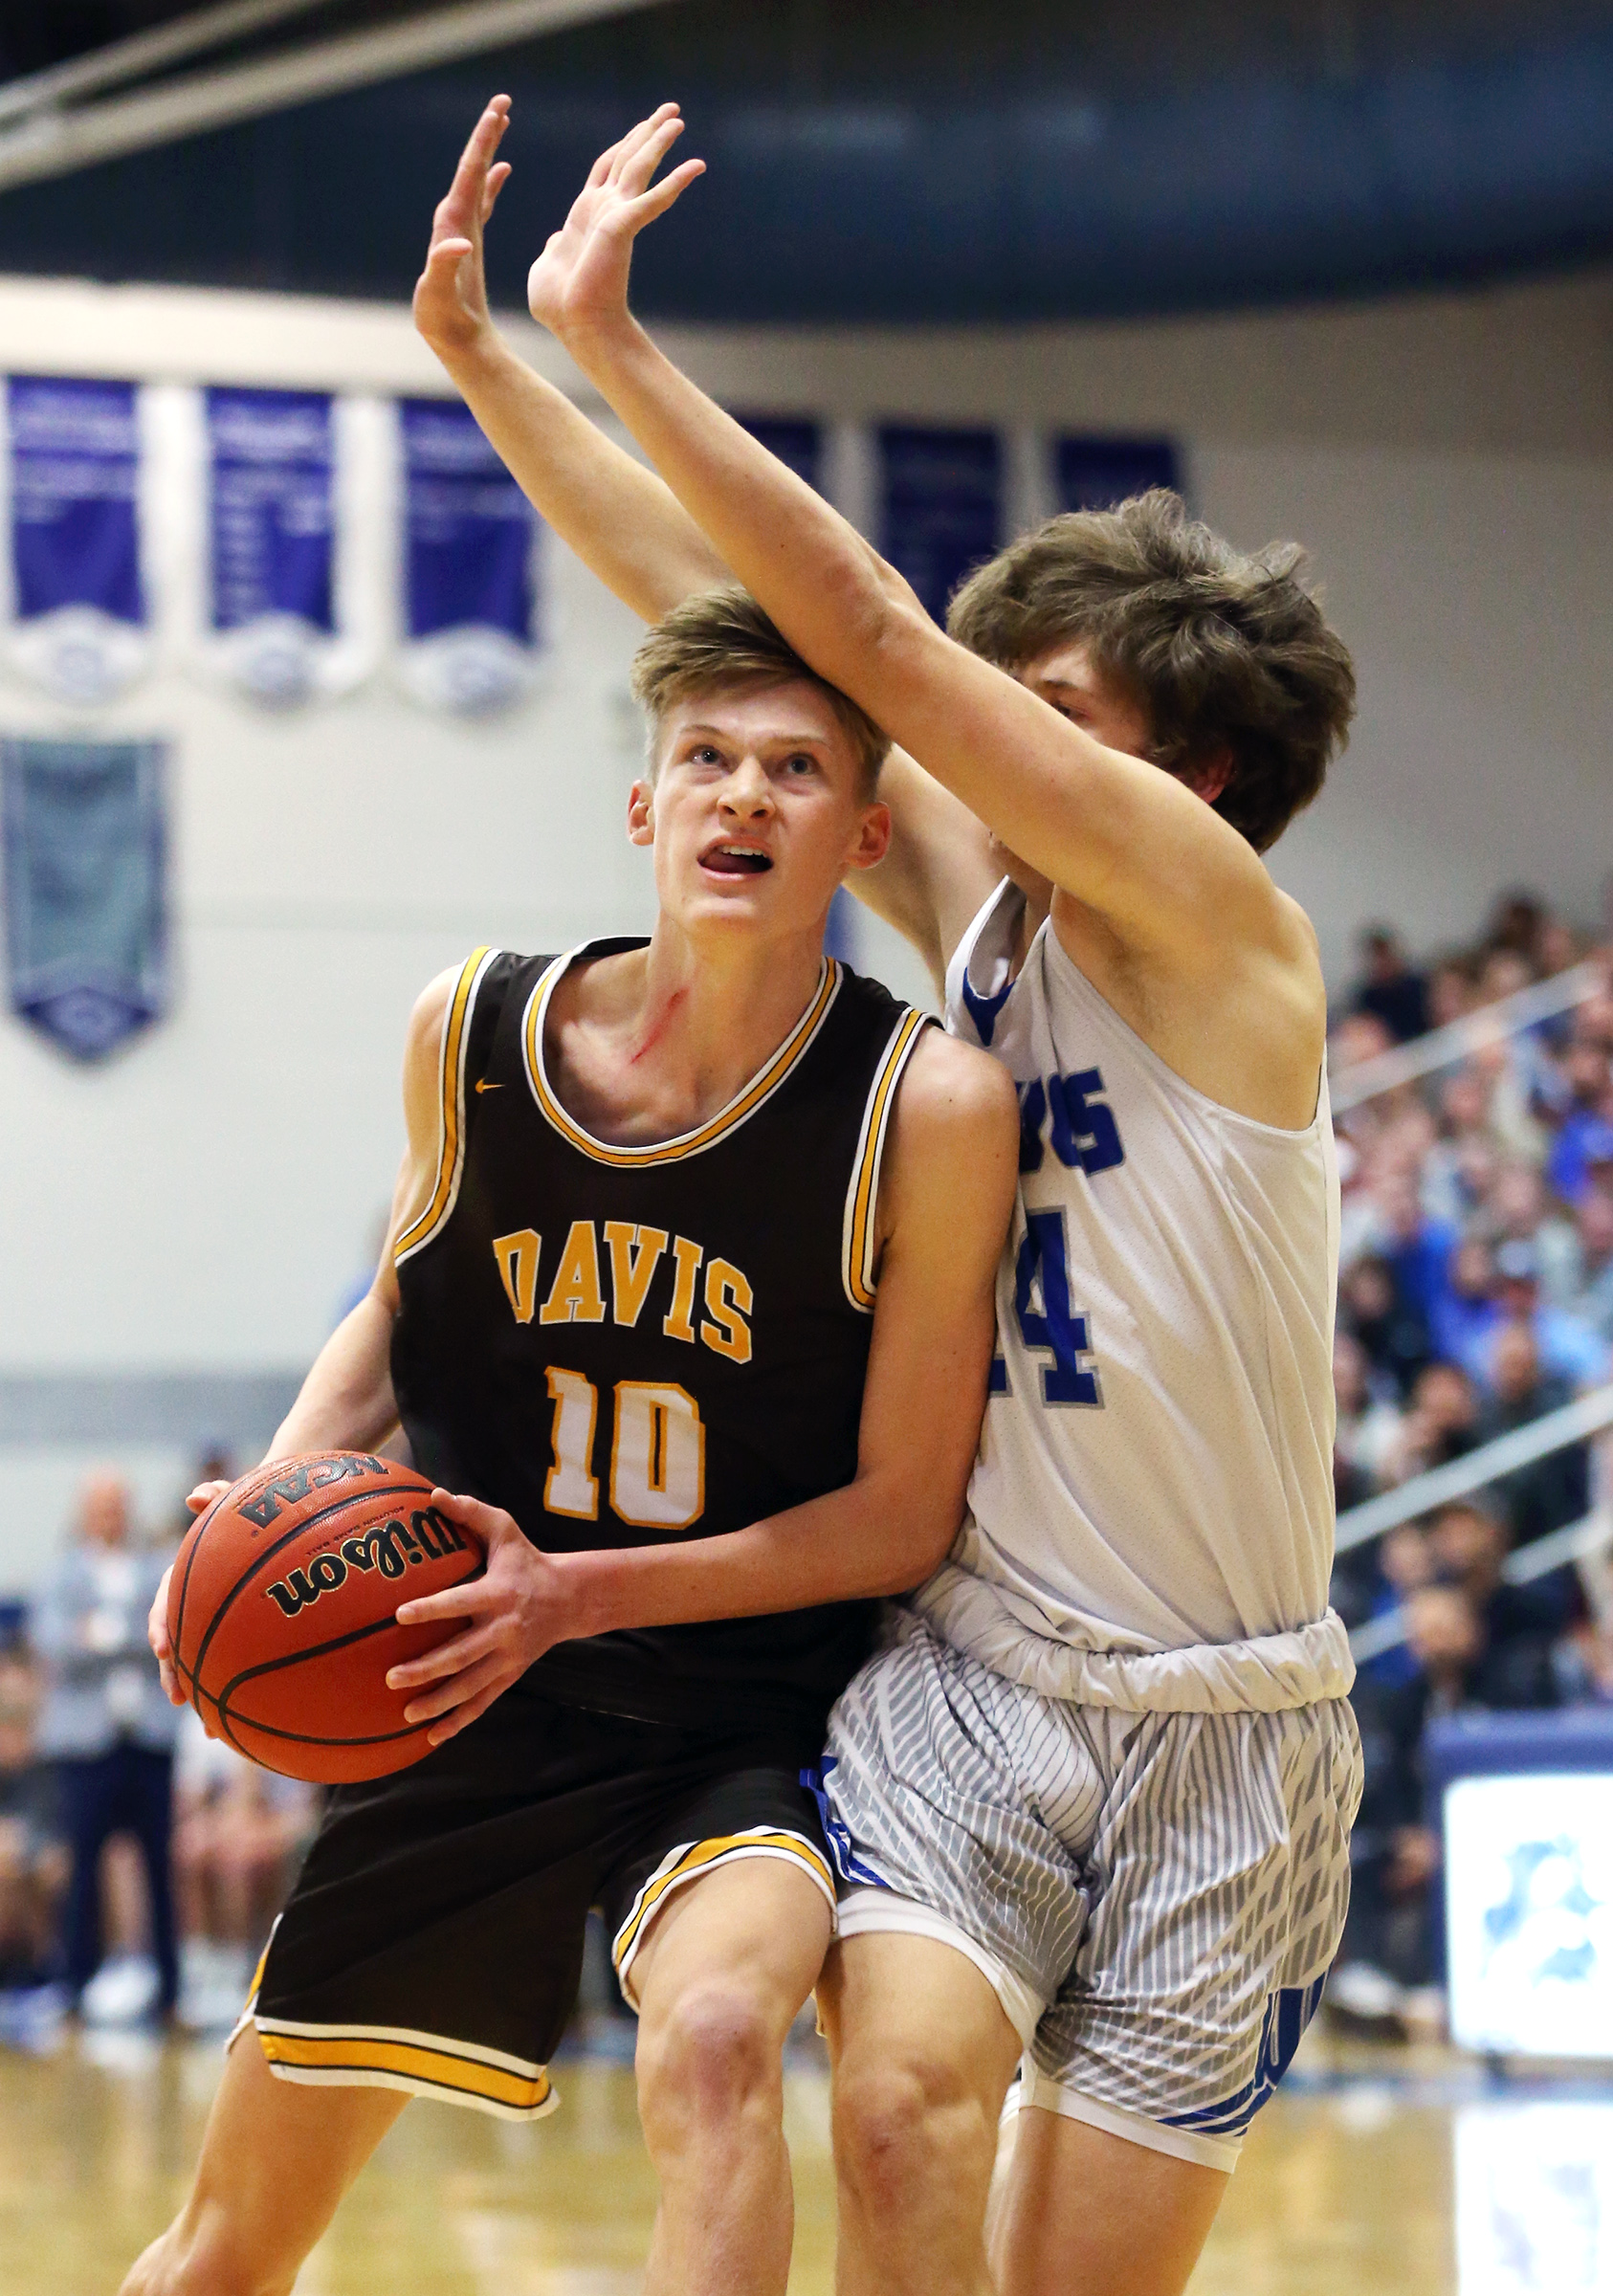 Davis' Trevan Leonhardt drives to the hoop with Fremont's Dakota Argyle defending as the two teams play in a high school basketball game in Plain City on Friday, Jan. 3, 2020. Davis won 85-74.